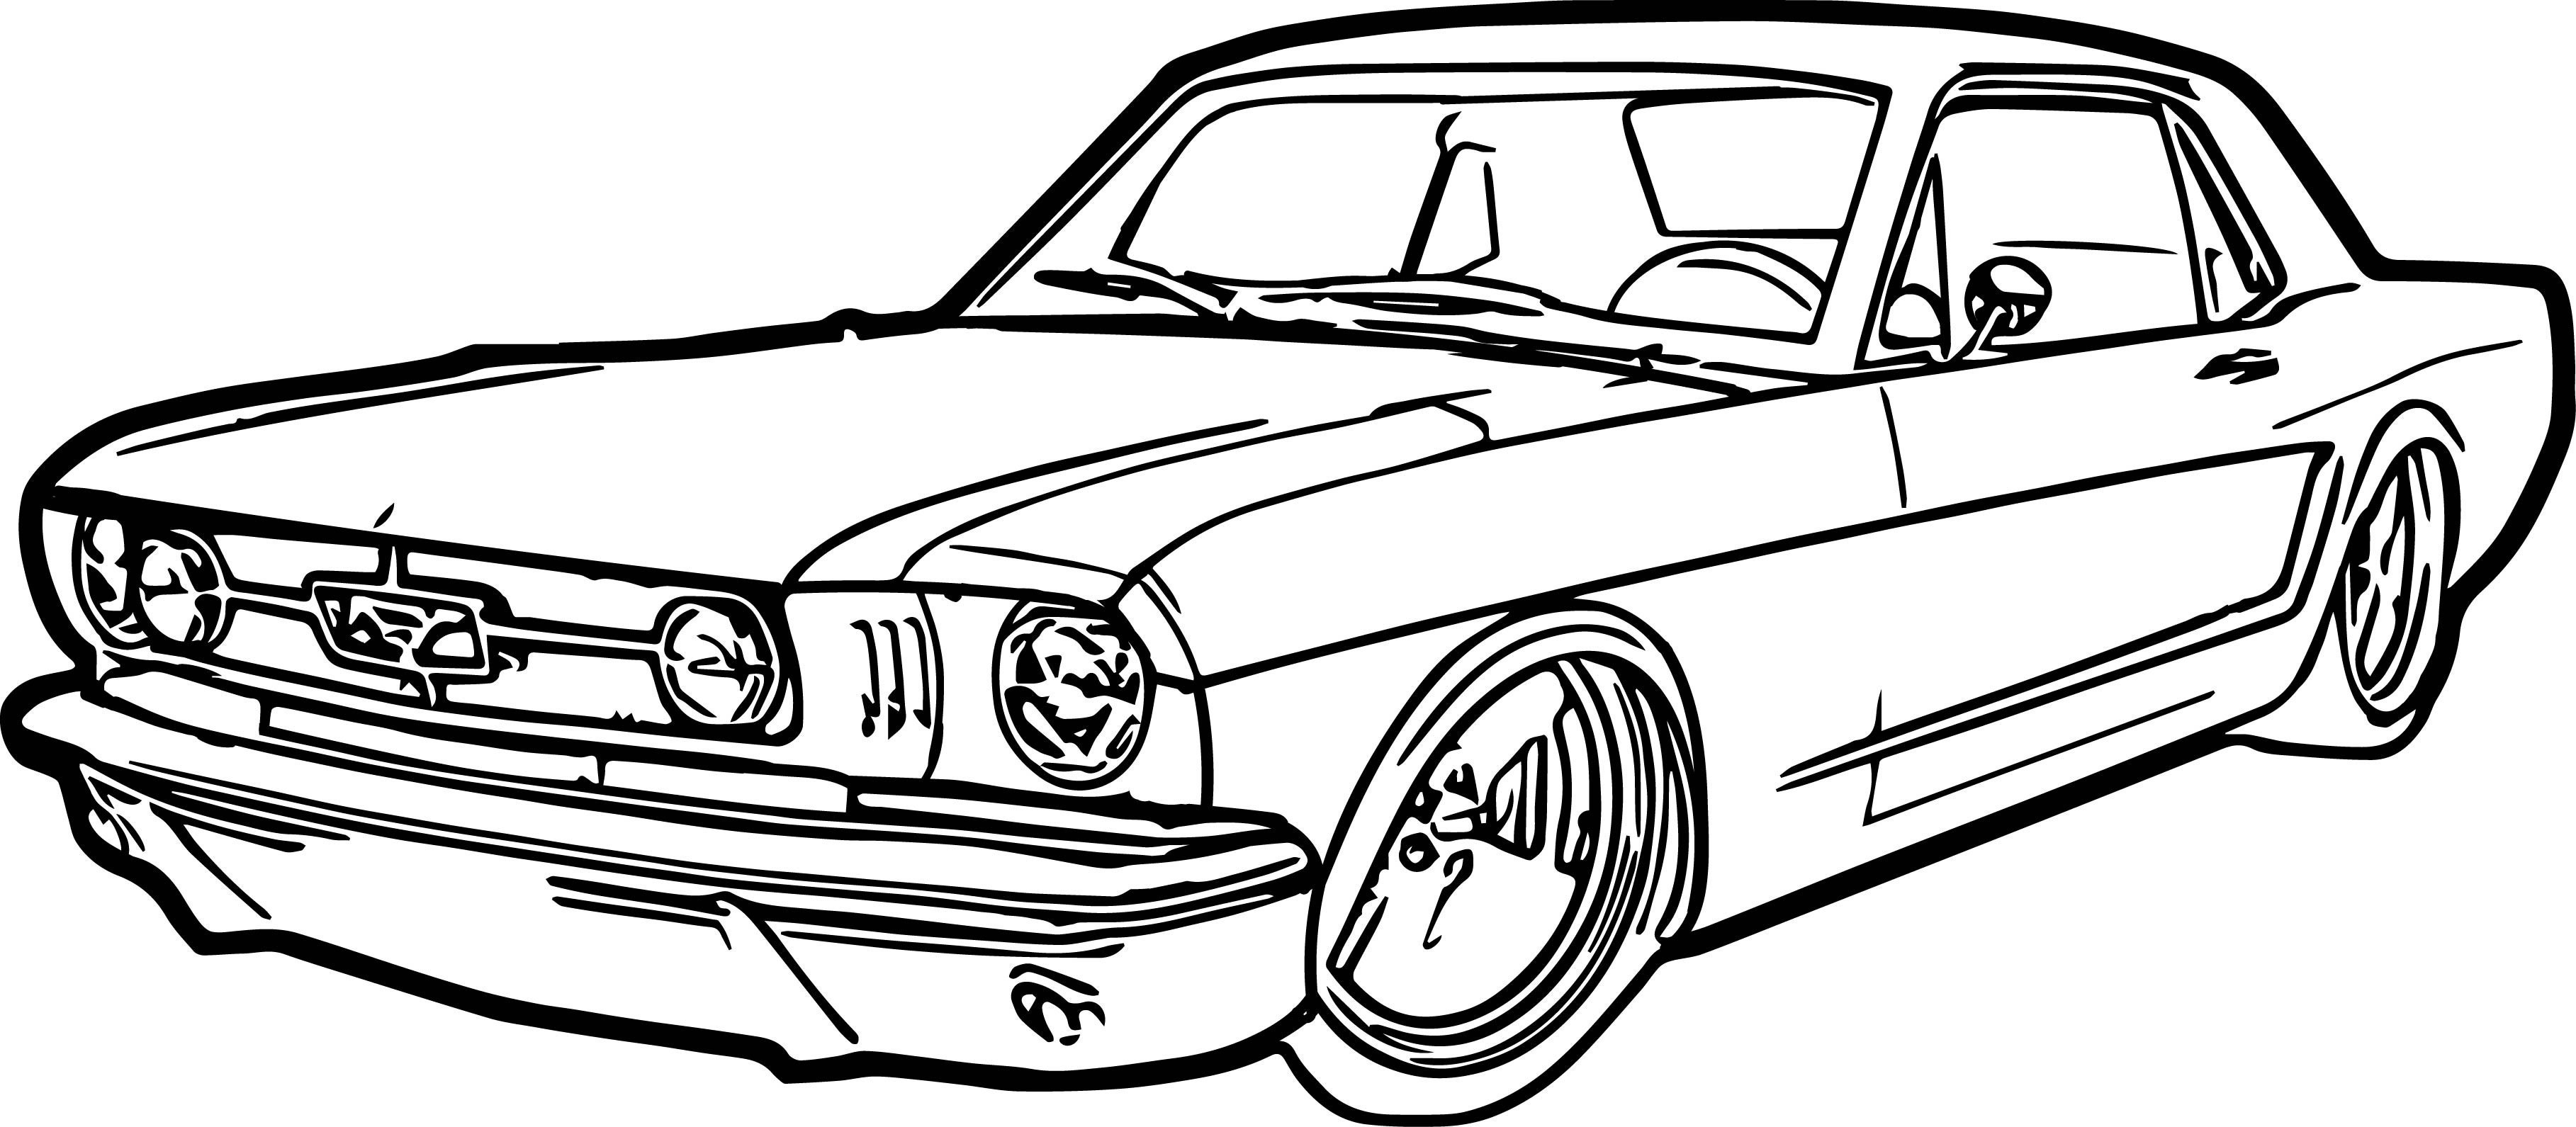 Hot Wheels Coloring Pages Pictures - Whitesbelfast | 1591x3635